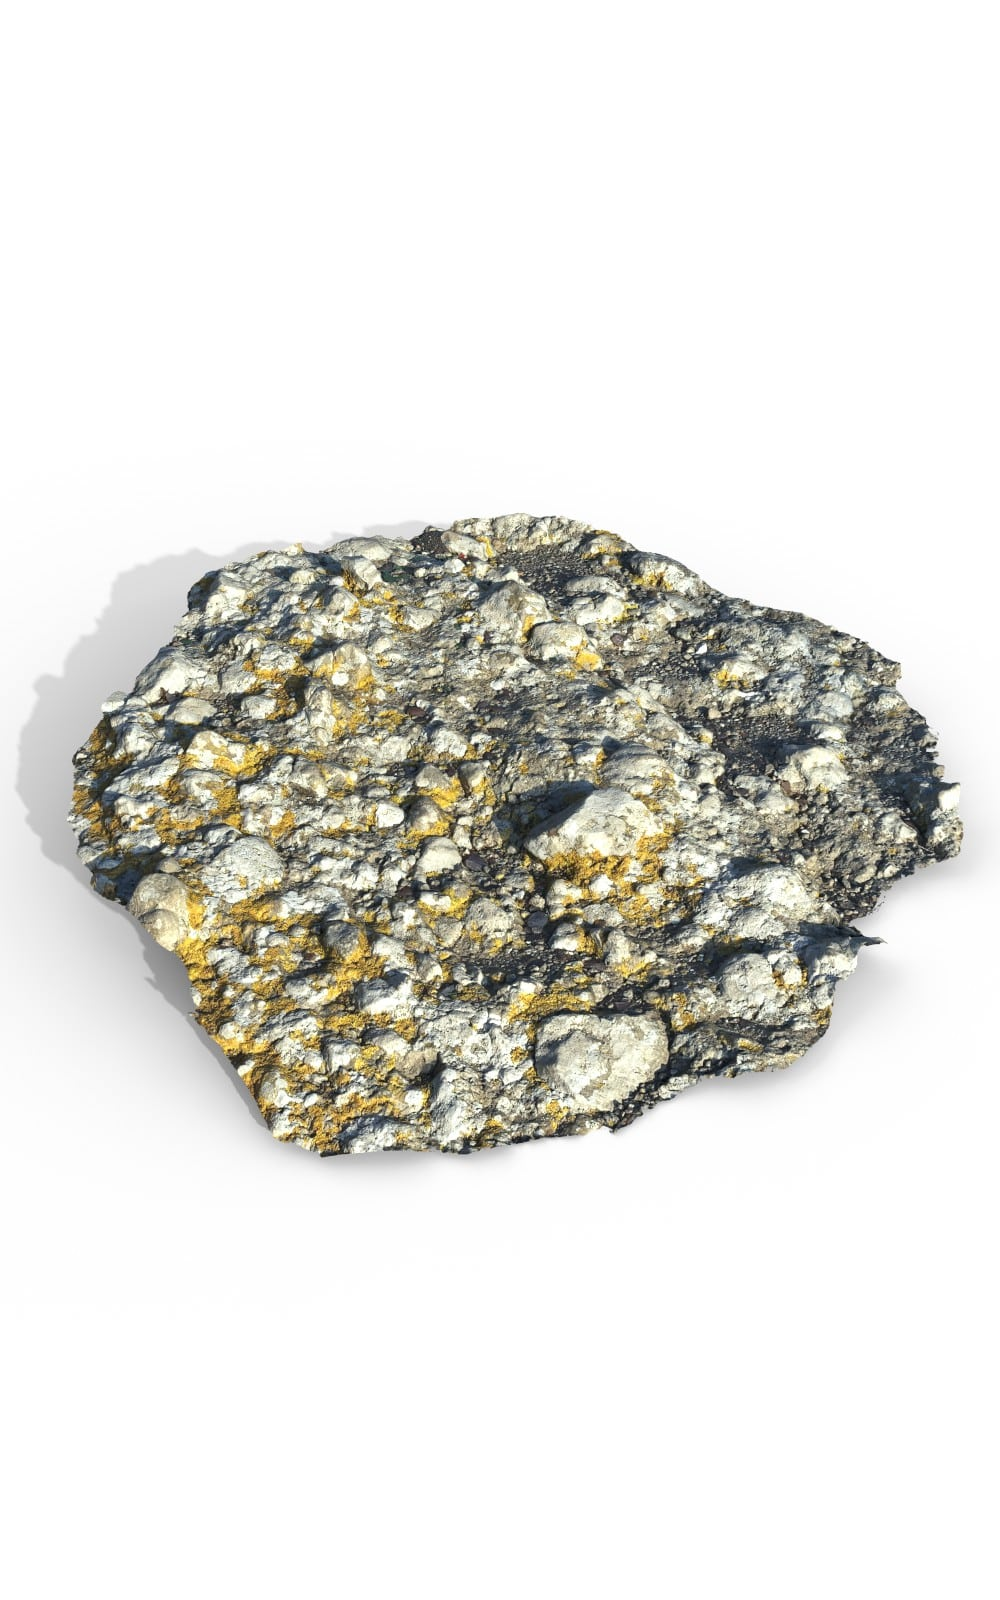 Natural Ground Rock Premium 3D Model - image 1